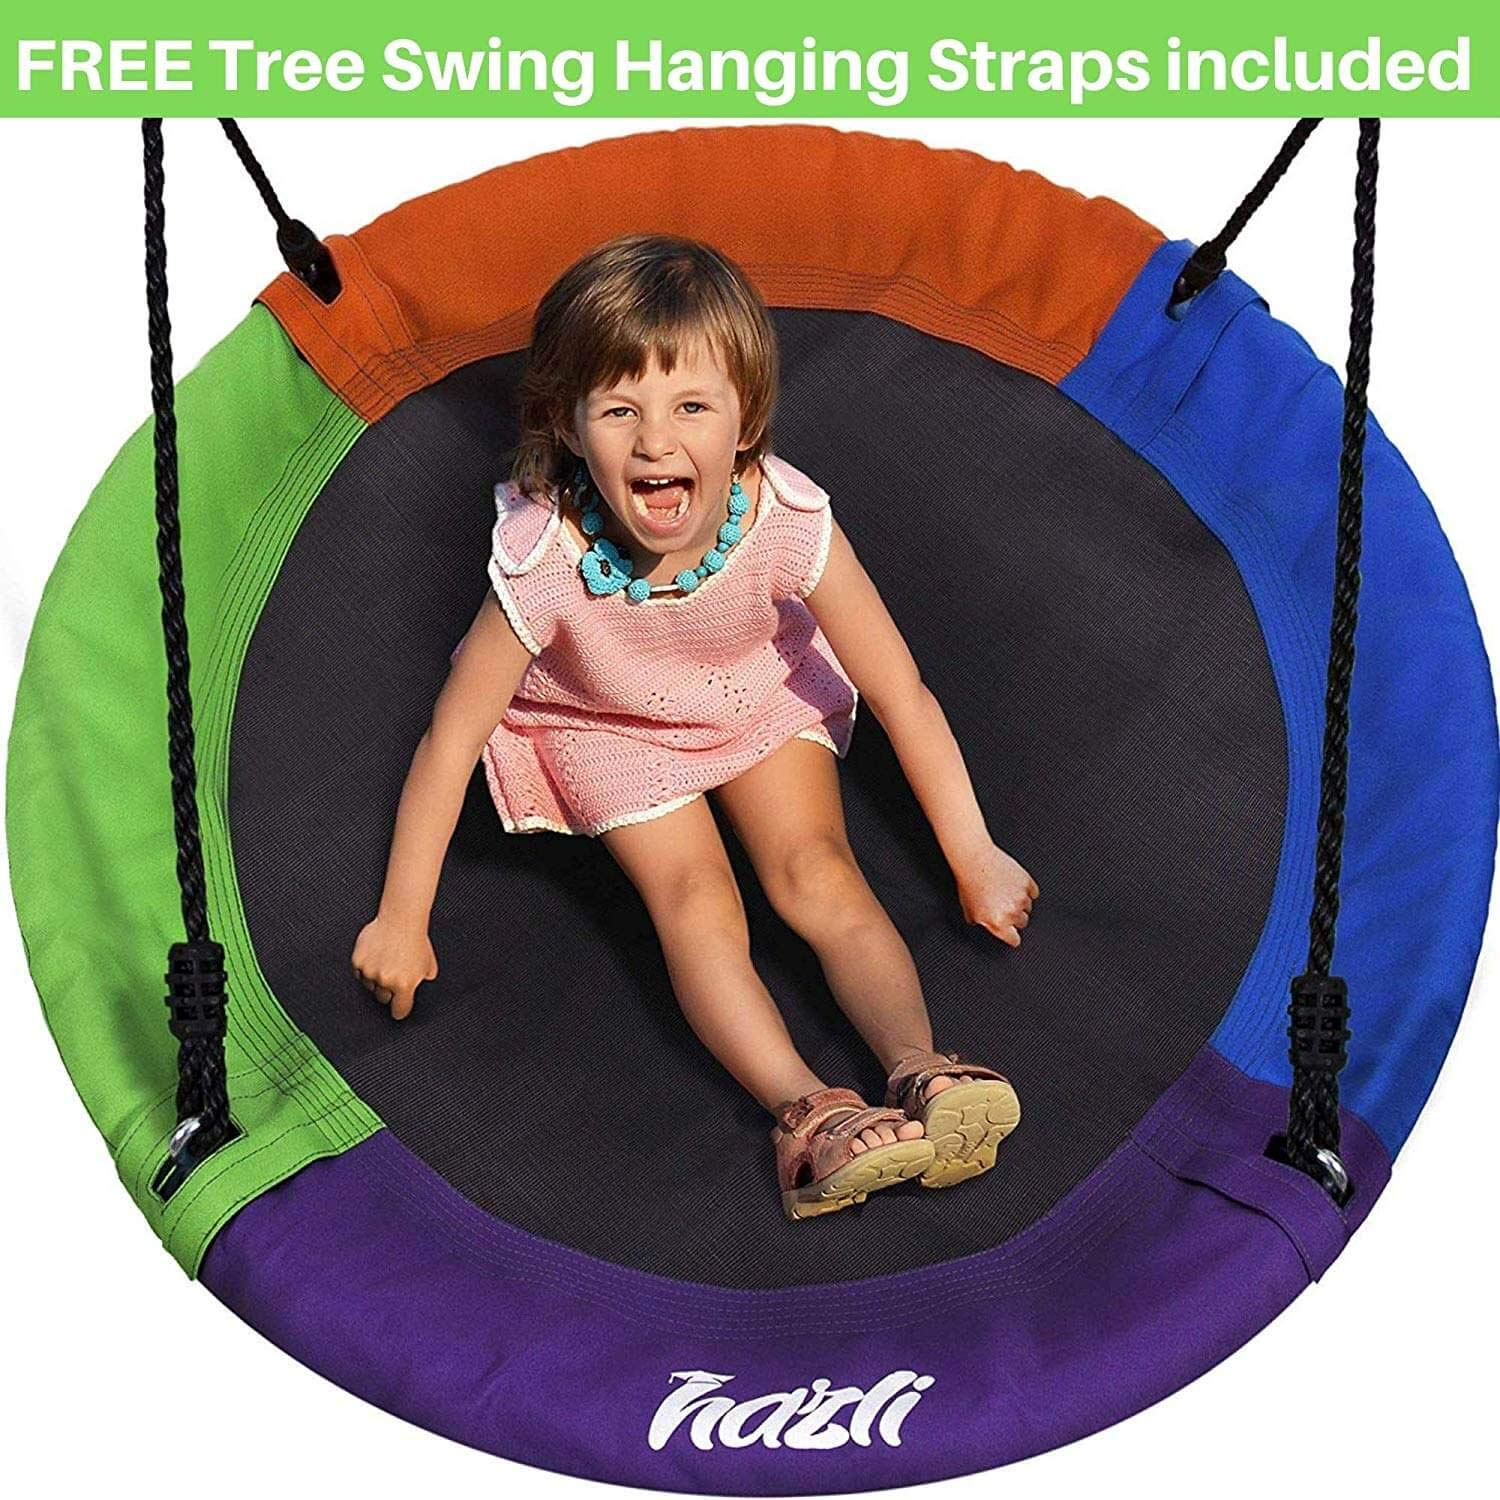 Outdoor Round Tree Swing for Kids - 40'' Saucer Tree Swing for Kids-Large Tree Swings for Children - 400 lbs Tree Swings for Outside with Hanging Kit